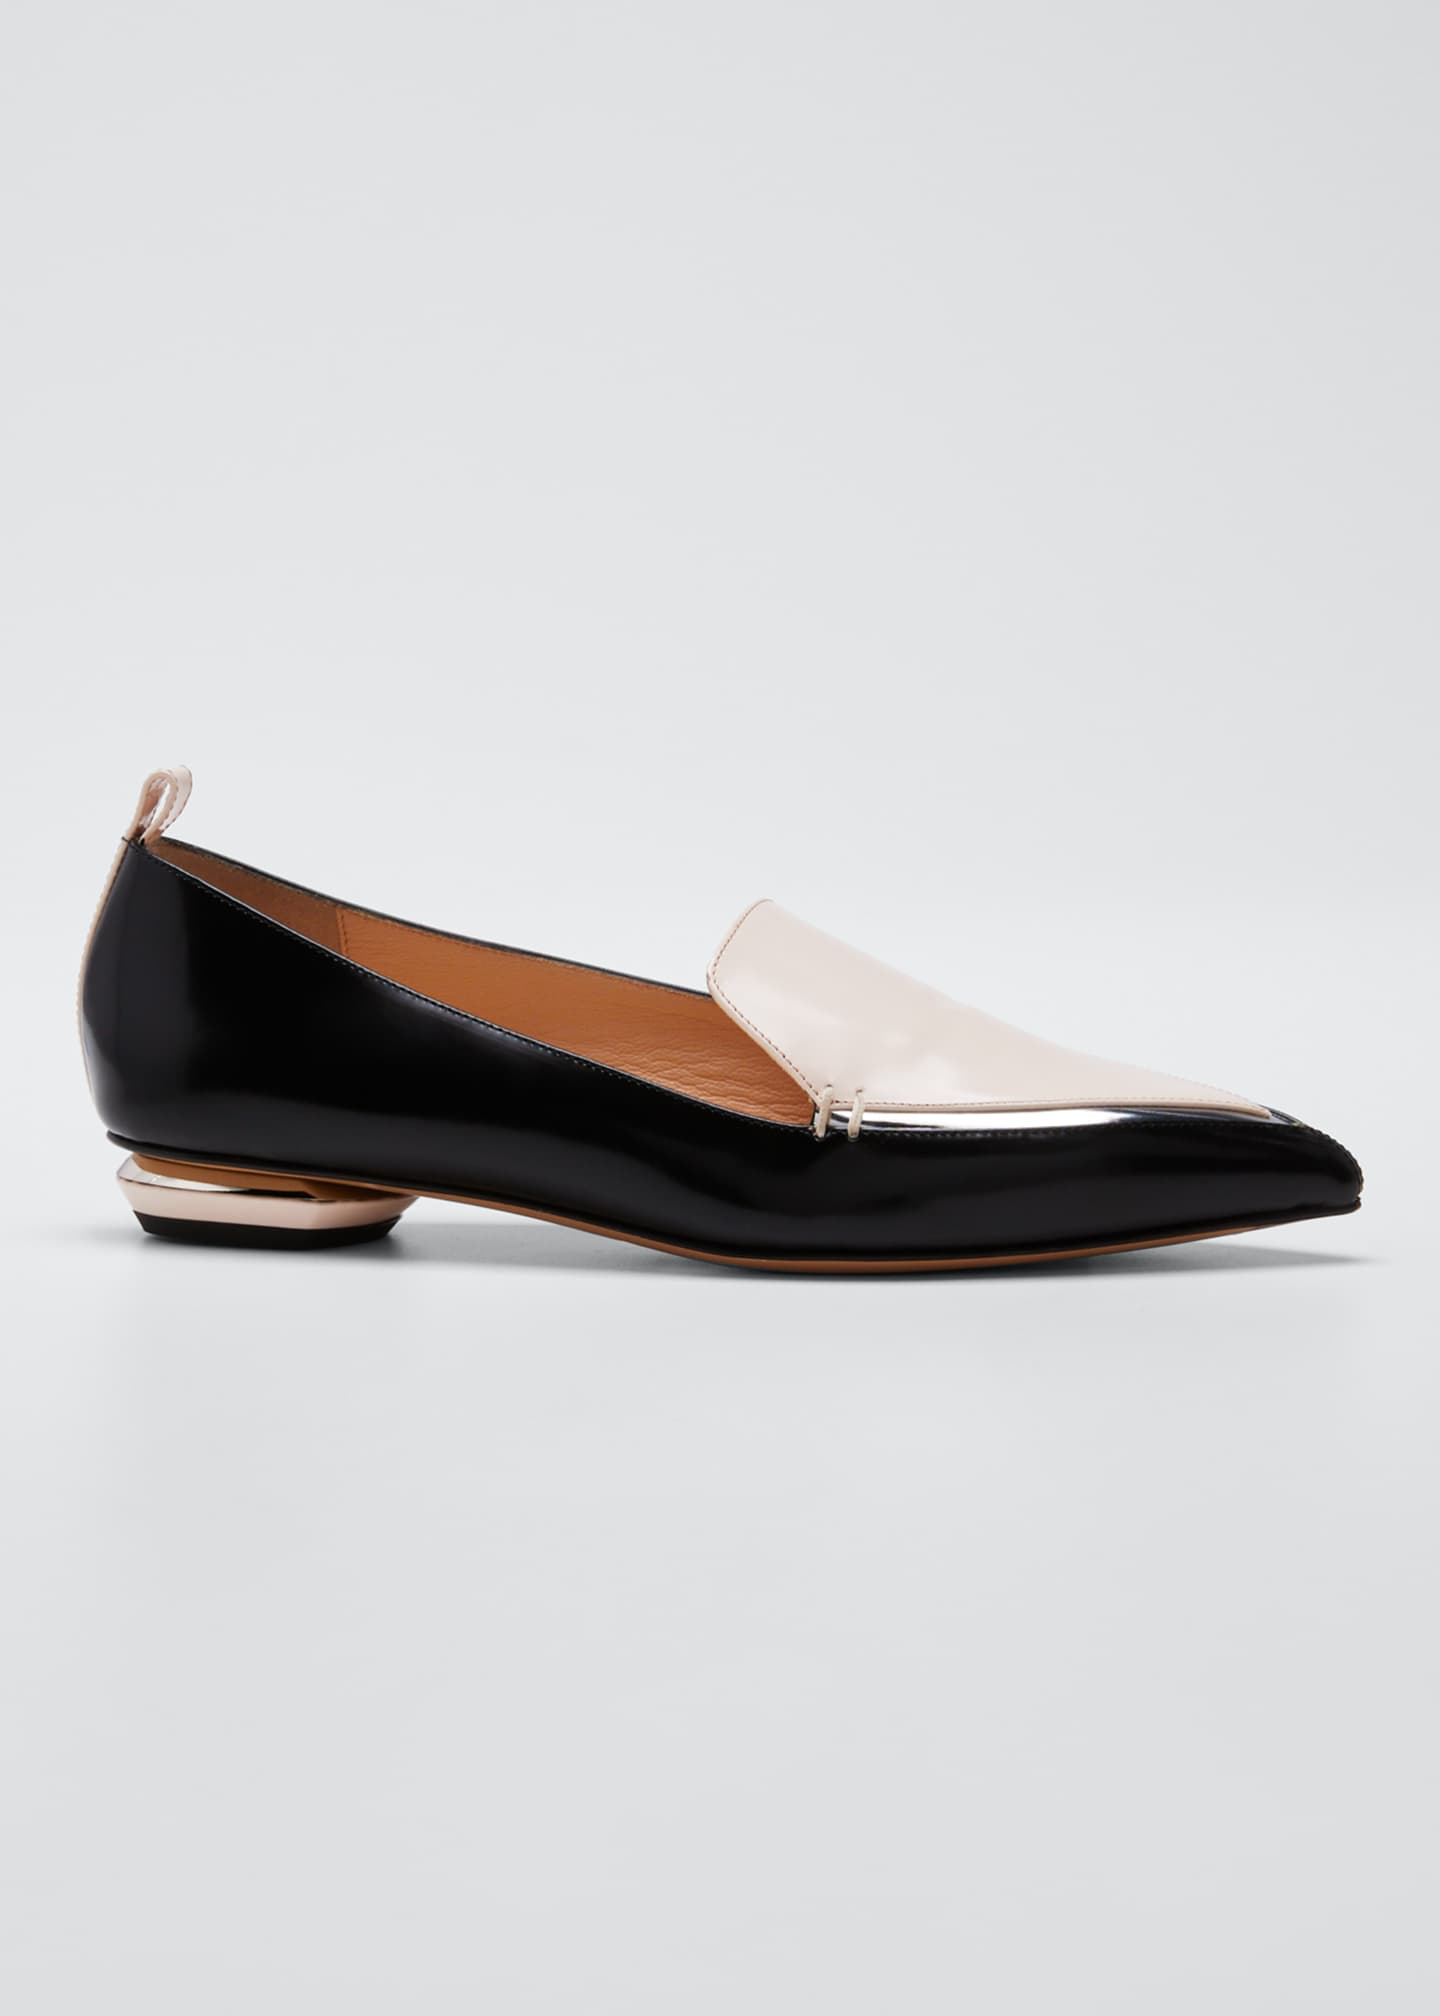 Nicholas Kirkwood Beya Two-Tone Leather Loafers, Black/Pink